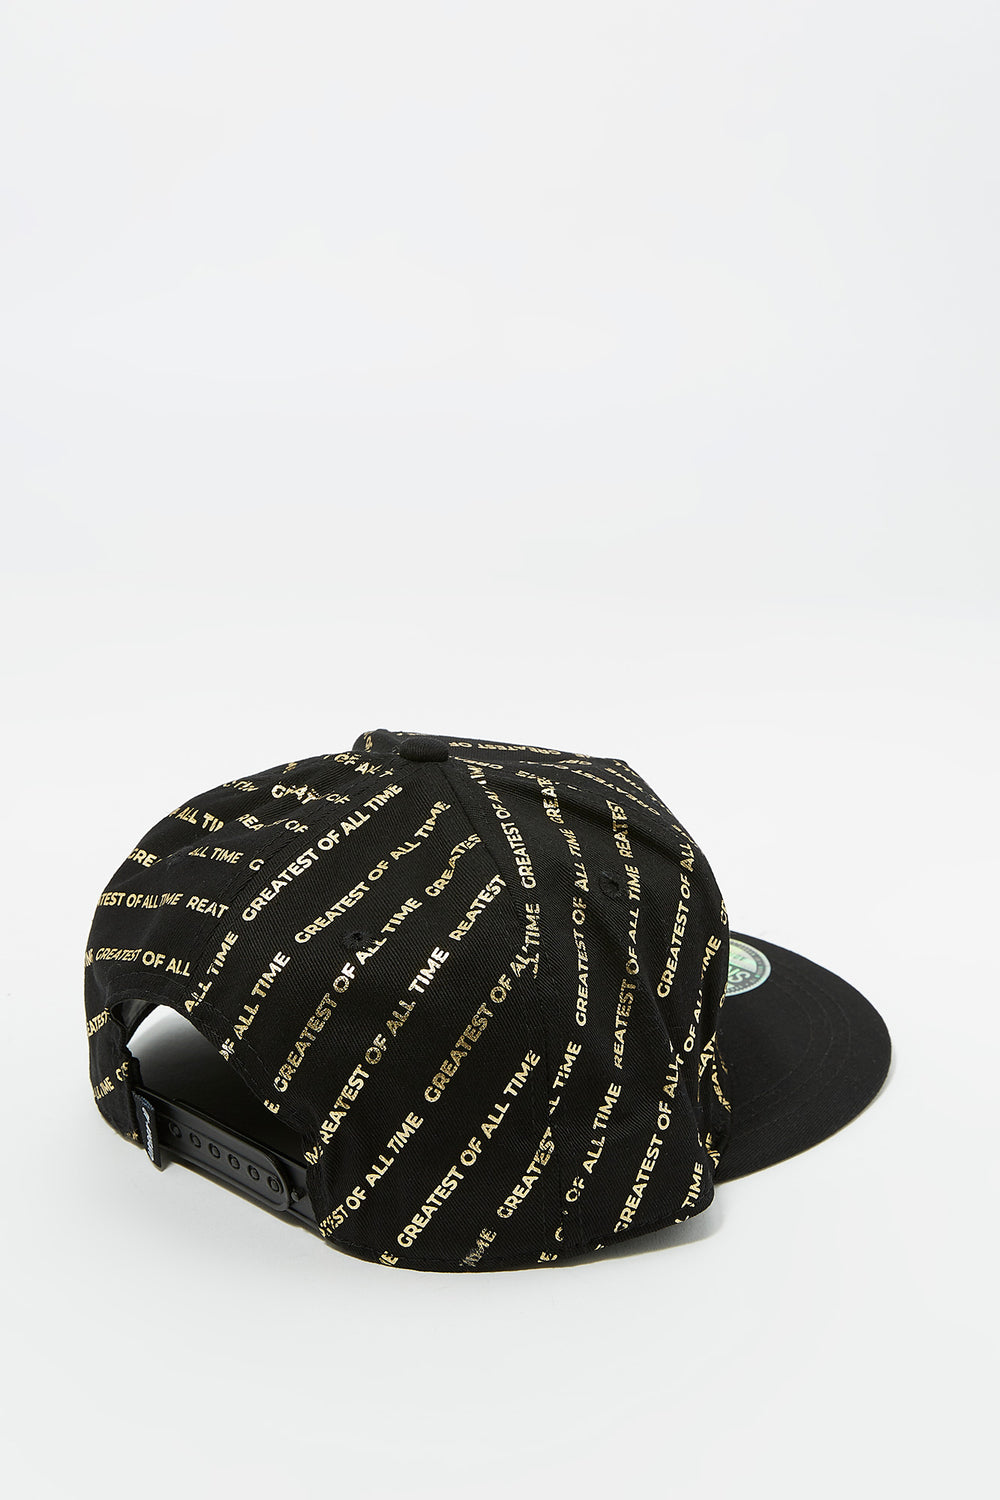 GOAT Embroidered Foil Printed Snapback Baseball Hat Black